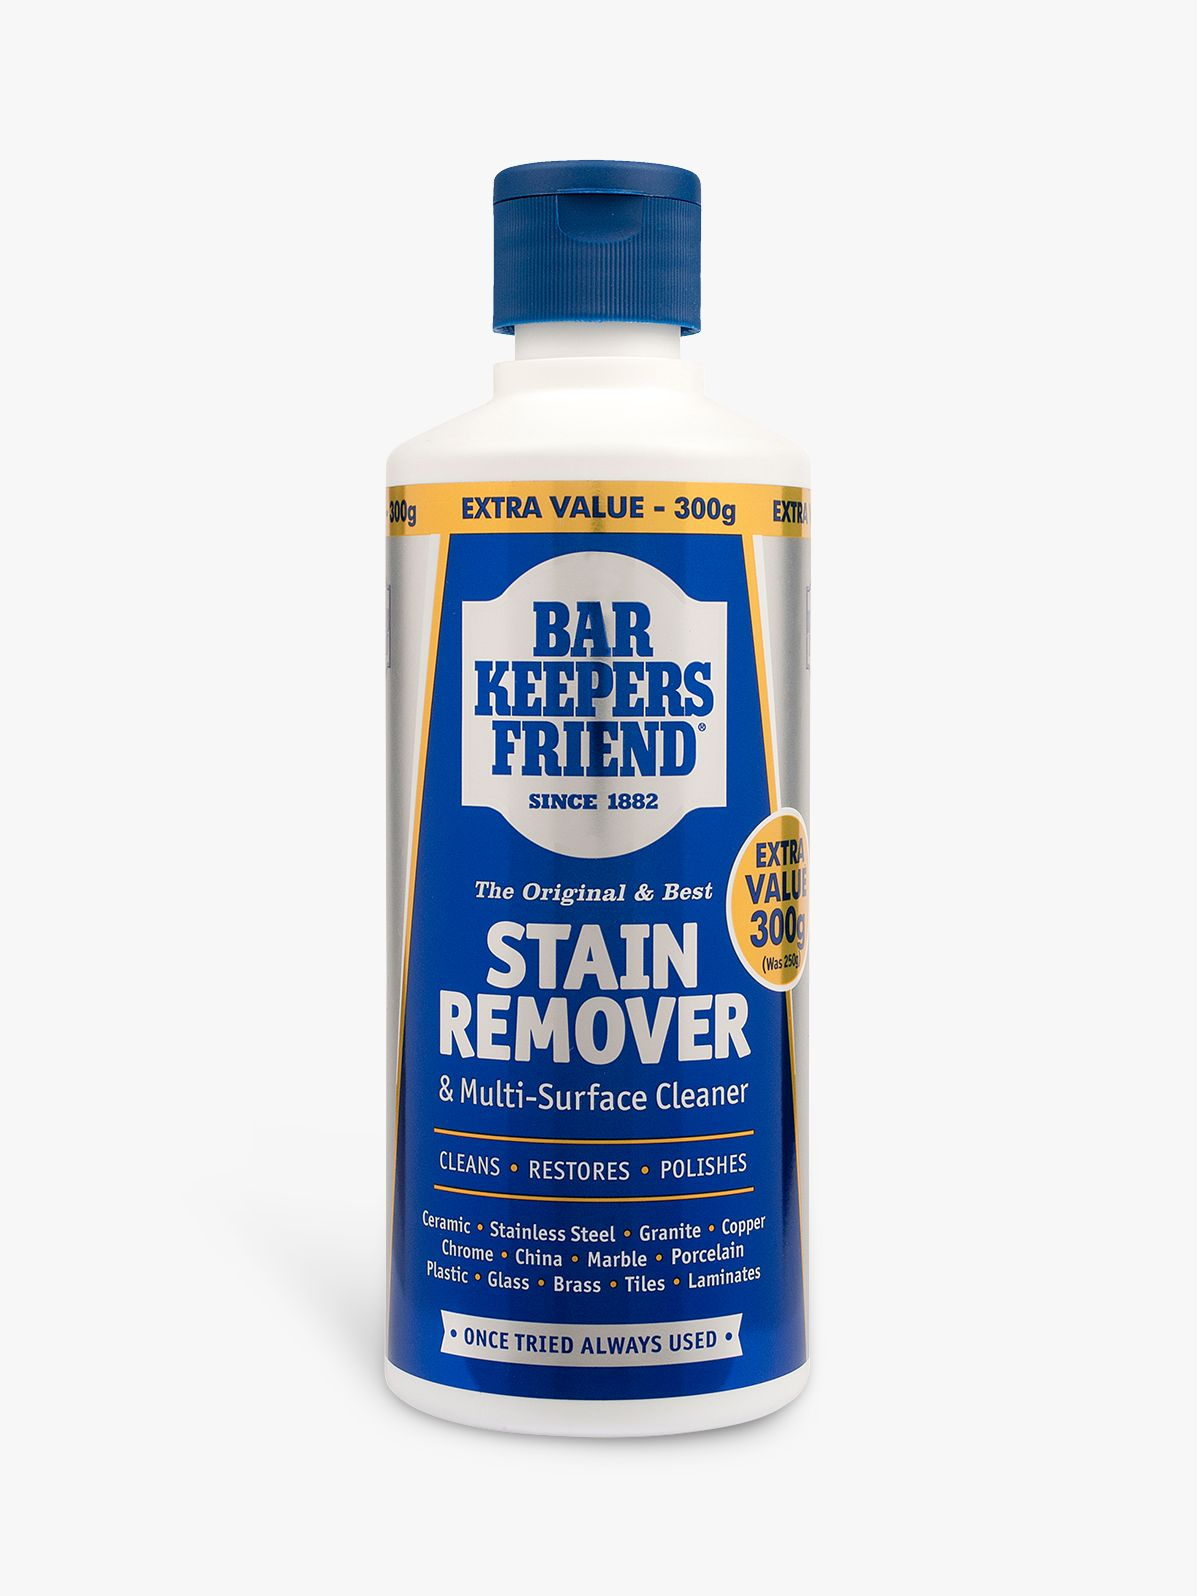 Bar Keeper's Friend Bar Keepers Friend Stain Remover & Multi-Surface Cleaner, 300ml